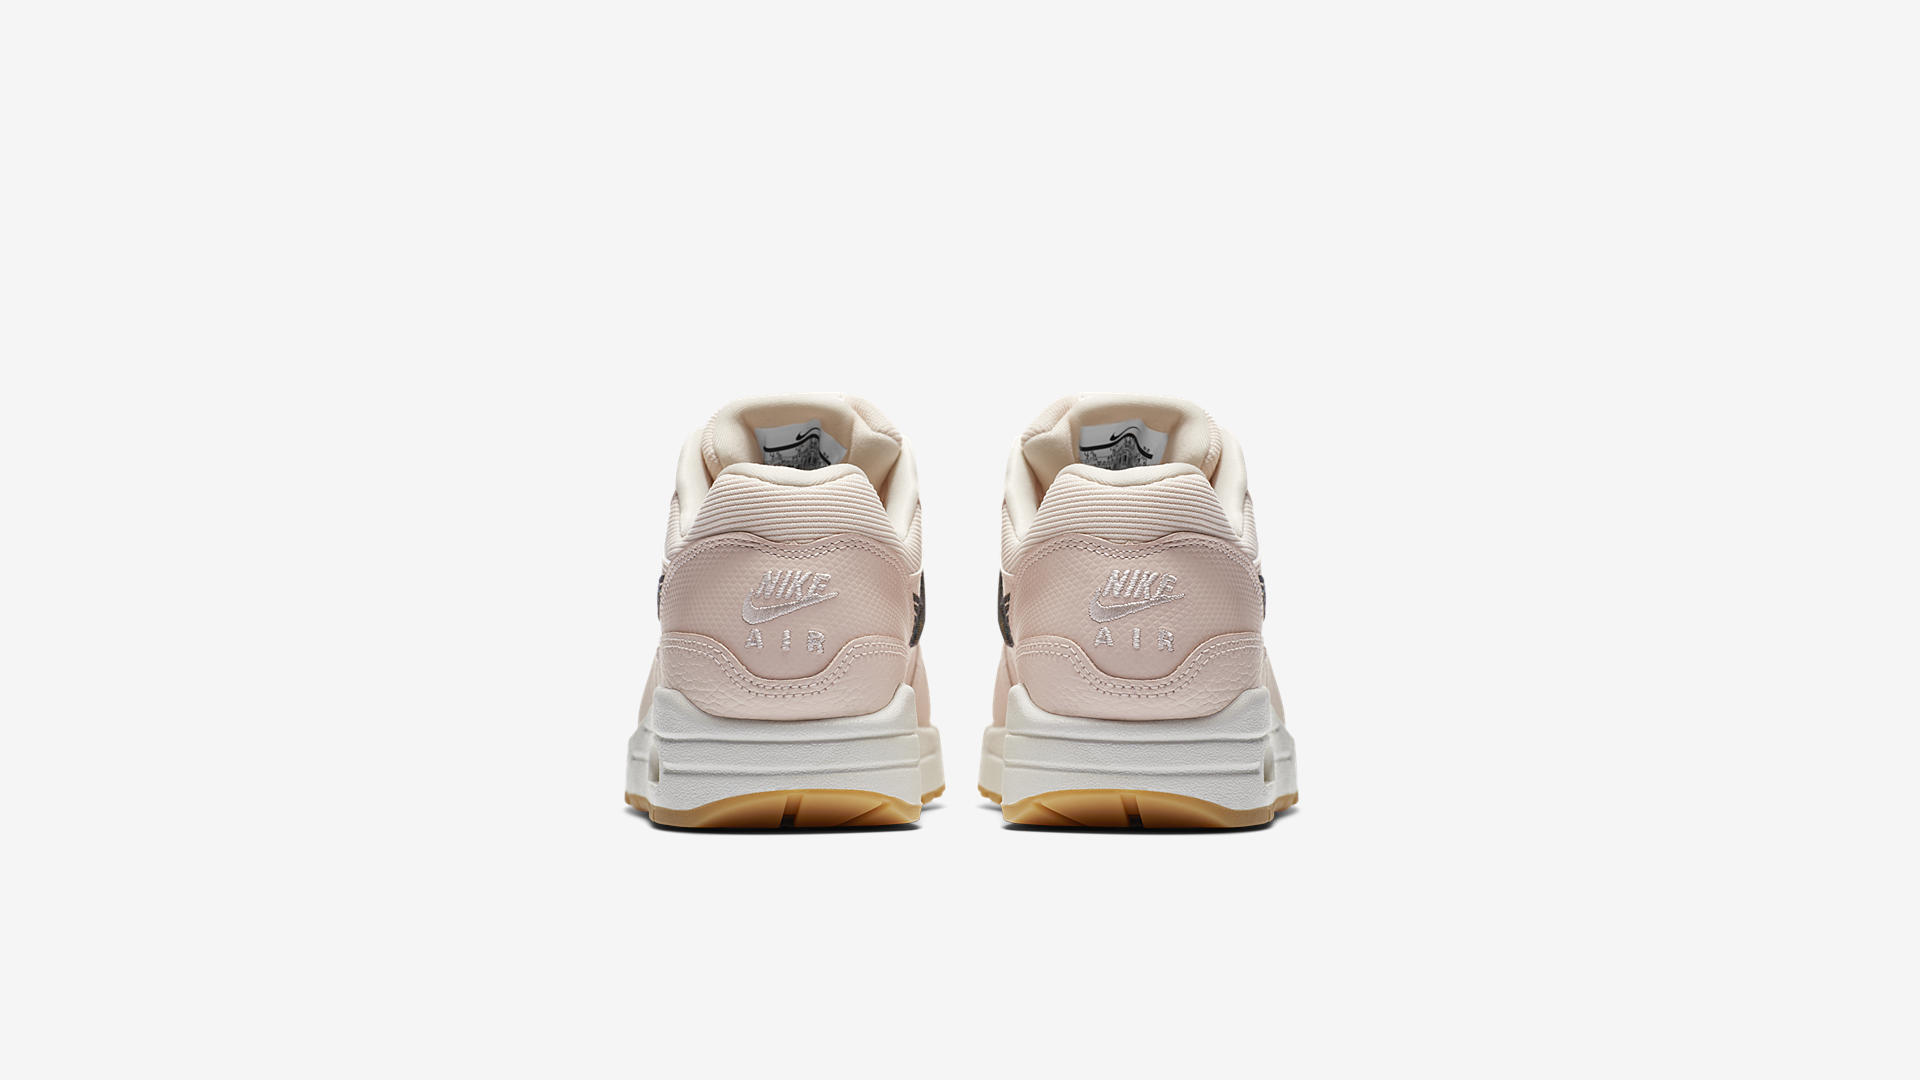 Nike Air Max 1 Premium Rose / Black / Off-White (454746-800)